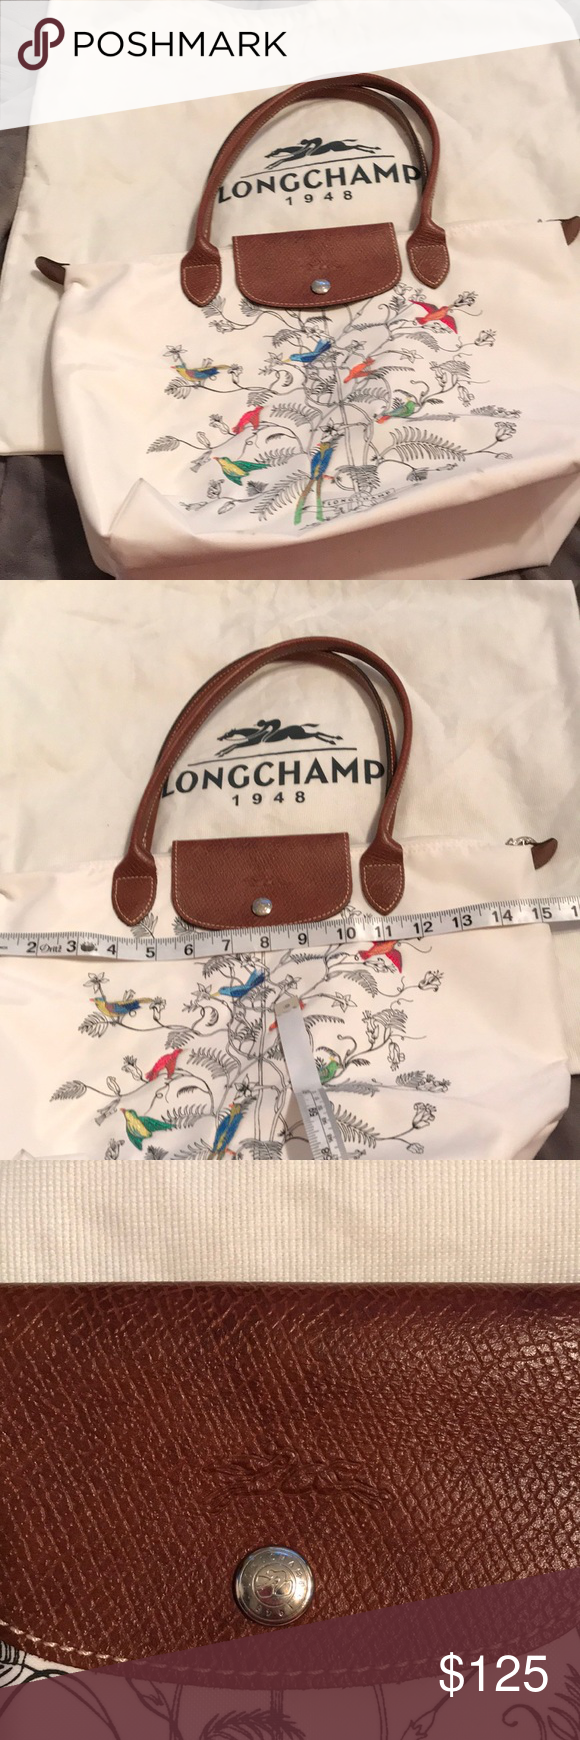 a76255799722 Longchamp Bag Limited edition Longchamp with birds in tree Used condition  some marks on outside and inside but still very stylish Longchamp Bags